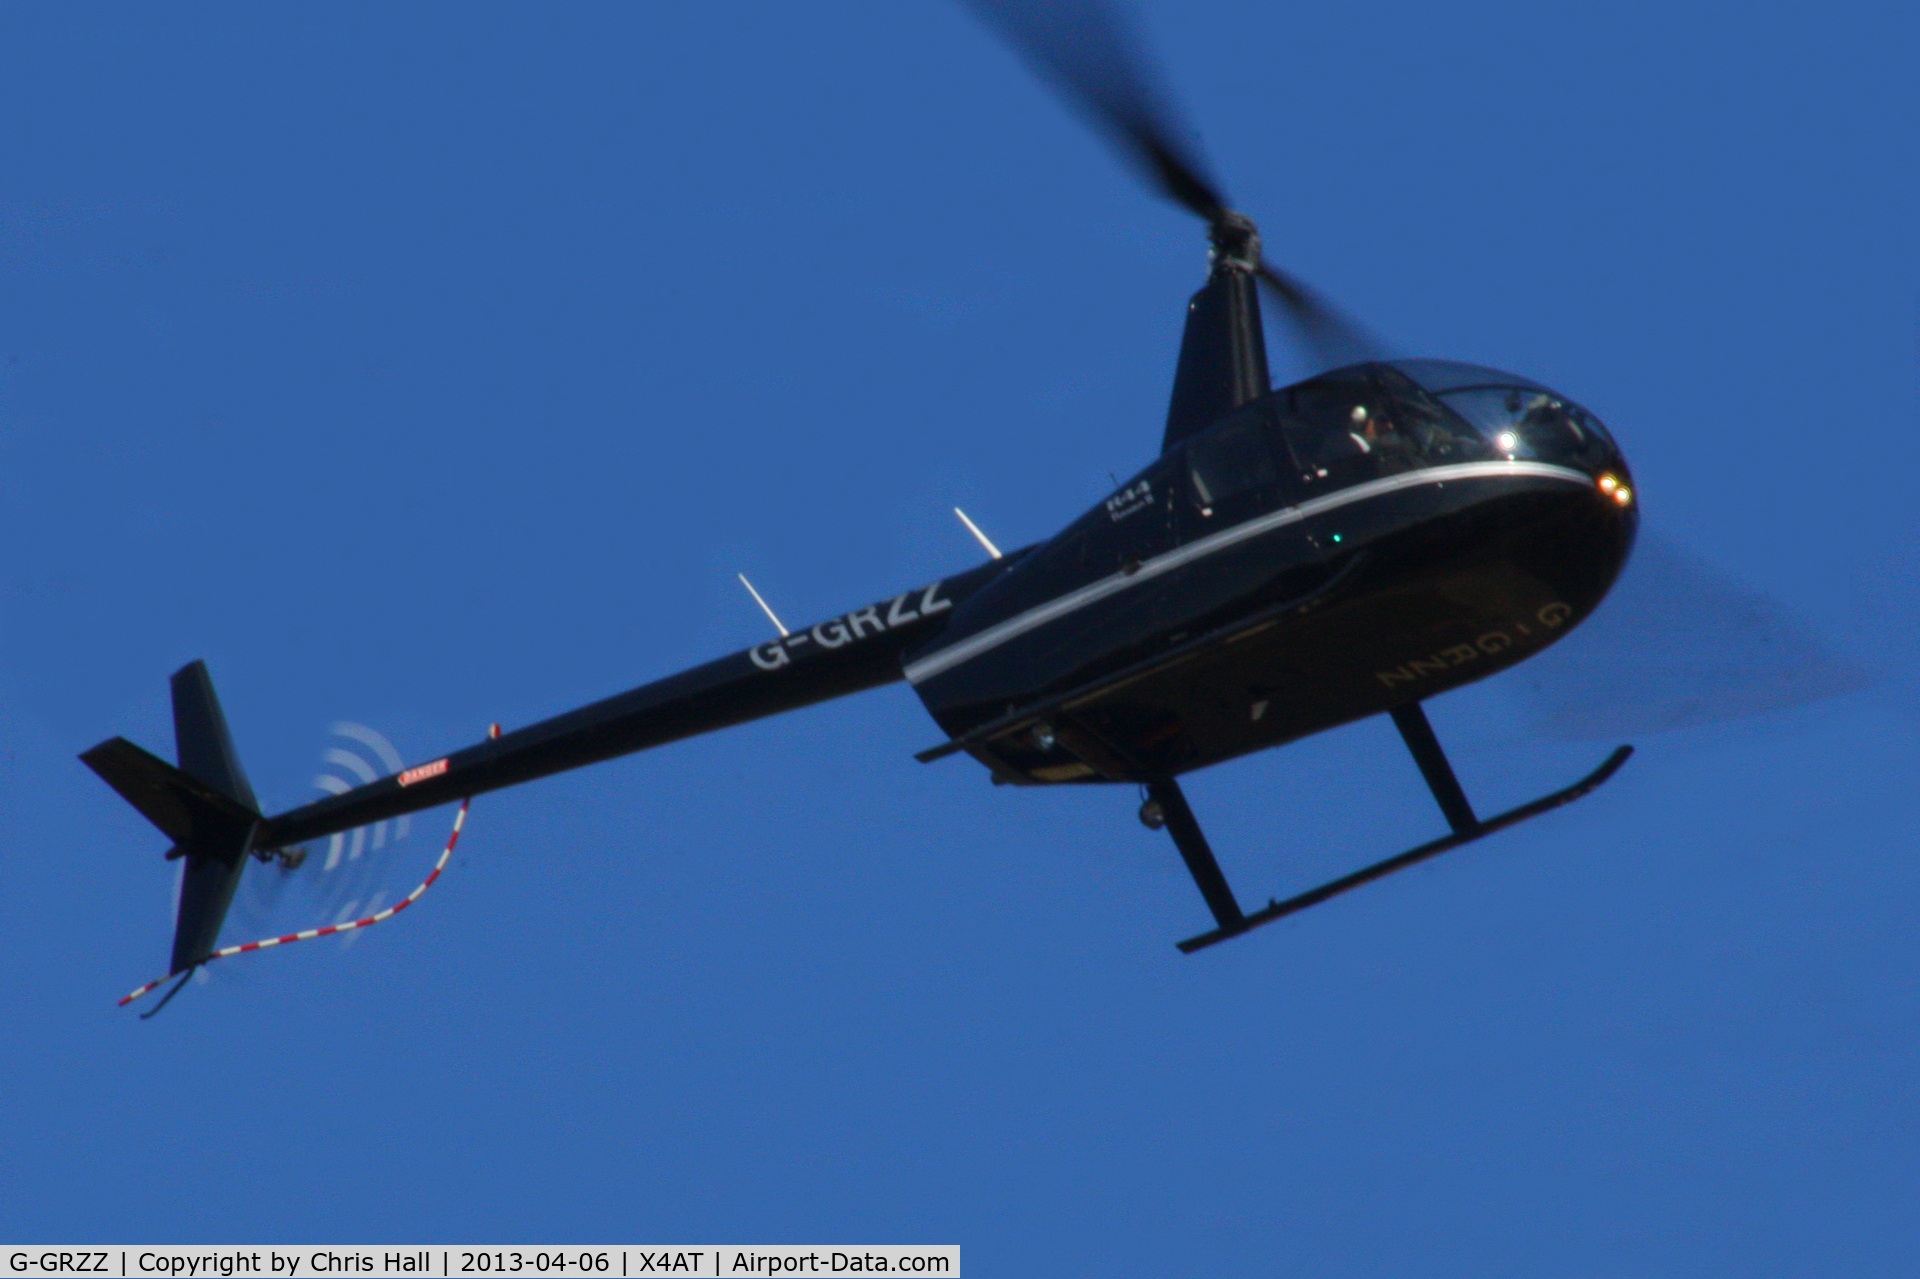 G-GRZZ, 2008 Robinson R44 Raven II C/N 12149, Ferrying racegoers into Aintree for the 2013 Grand National